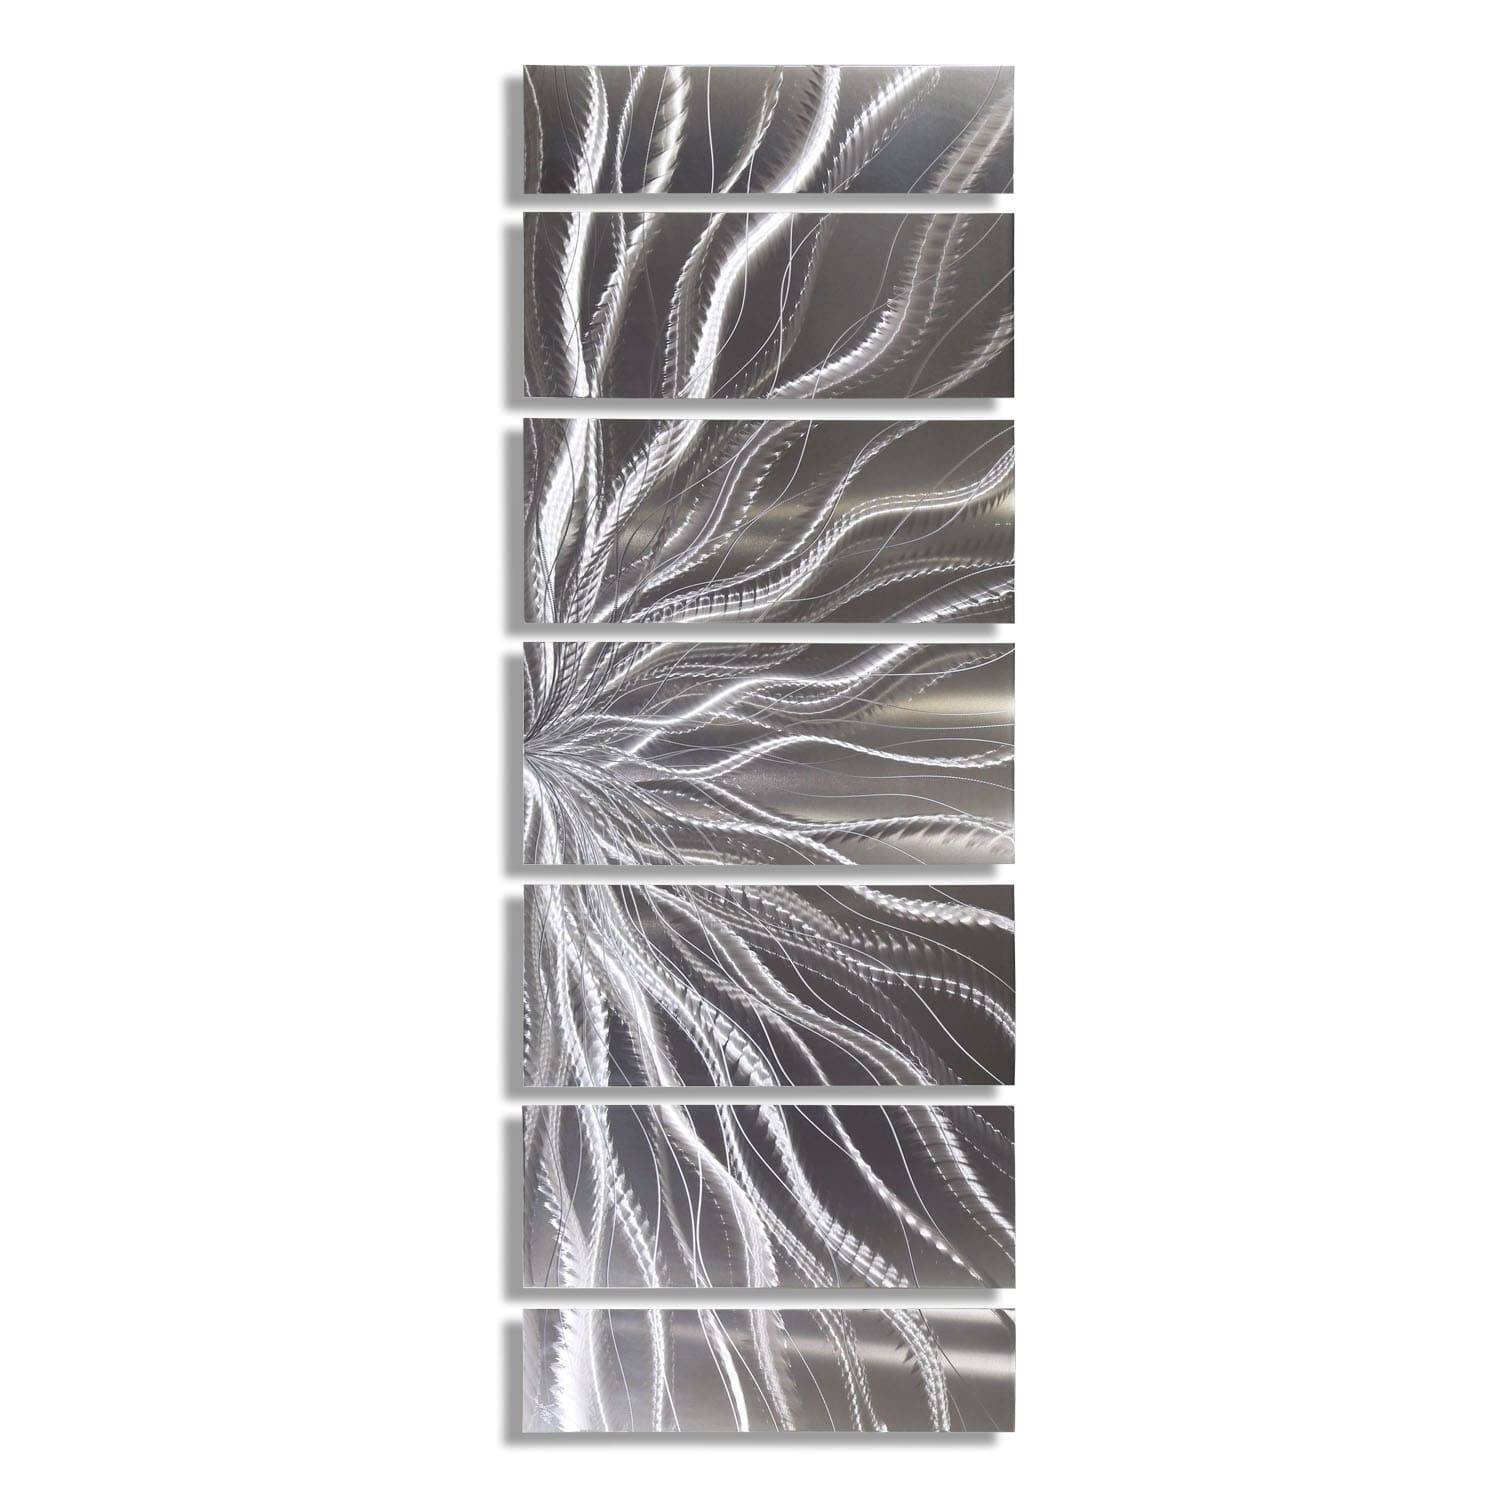 Statements2000 Silver Abstract Etched Metal Wall Art Sculpture For Most Popular Etched Metal Wall Art (View 15 of 20)